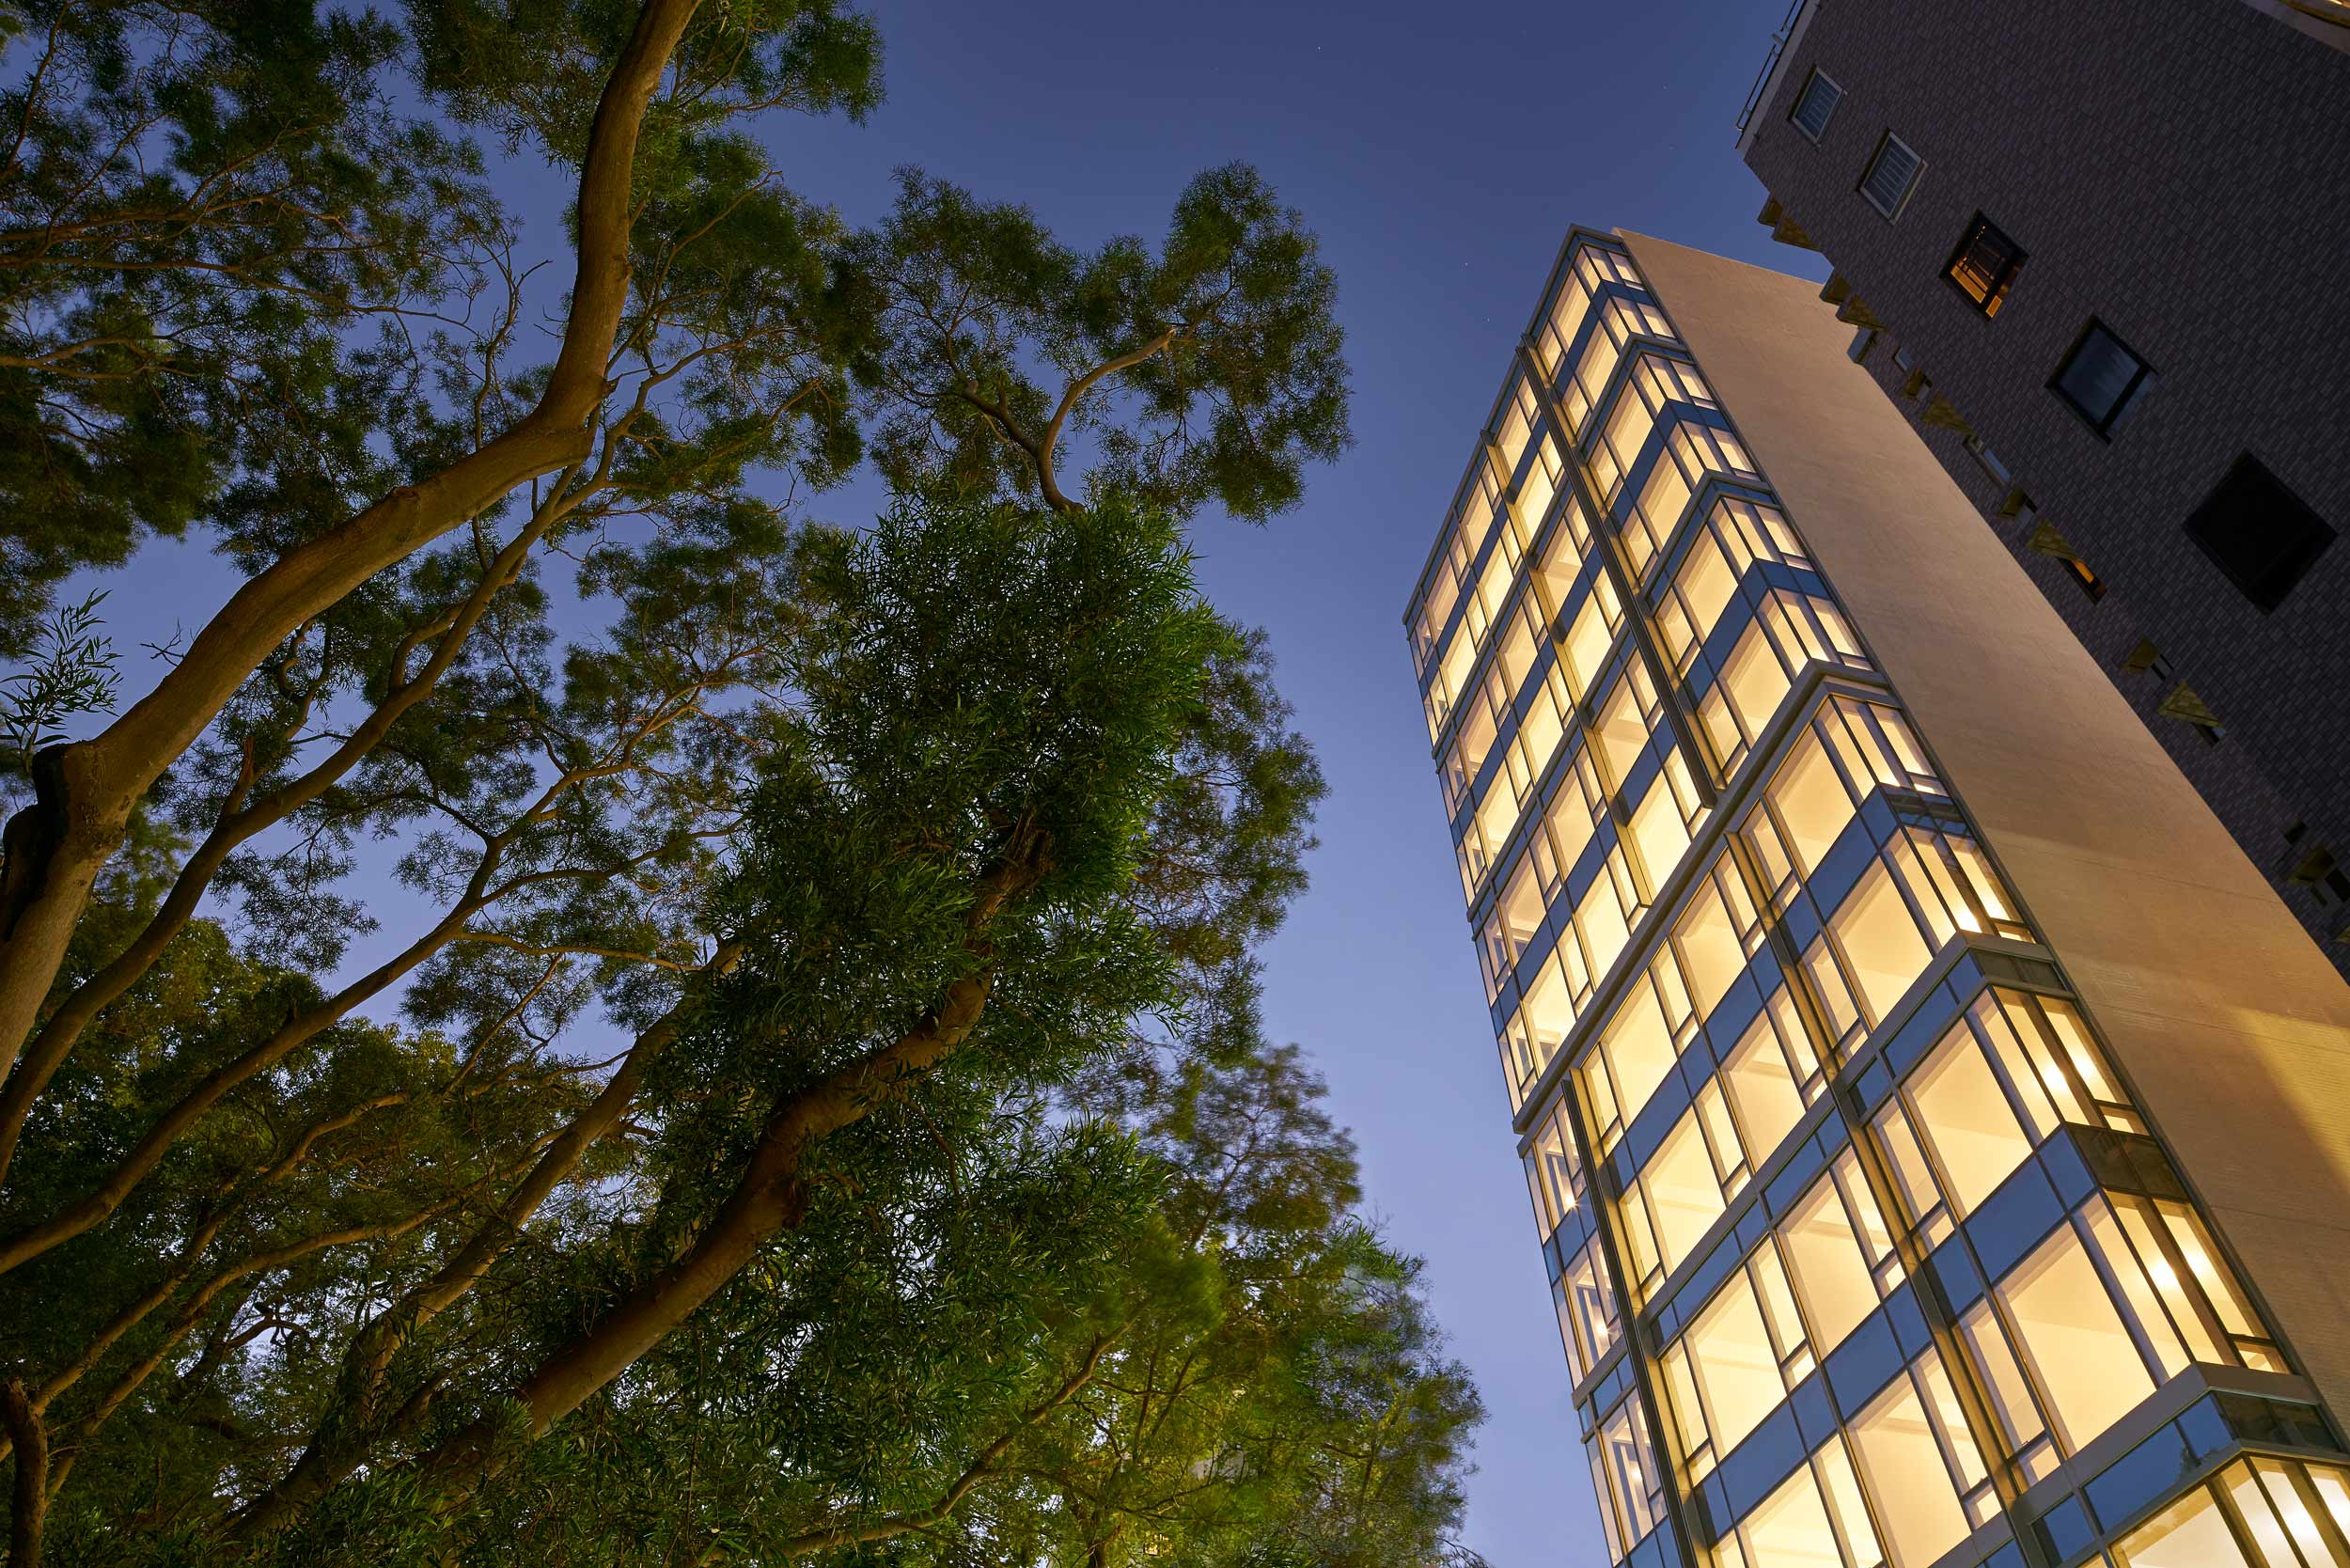 Christallo-residences-twilight-facade-exterior